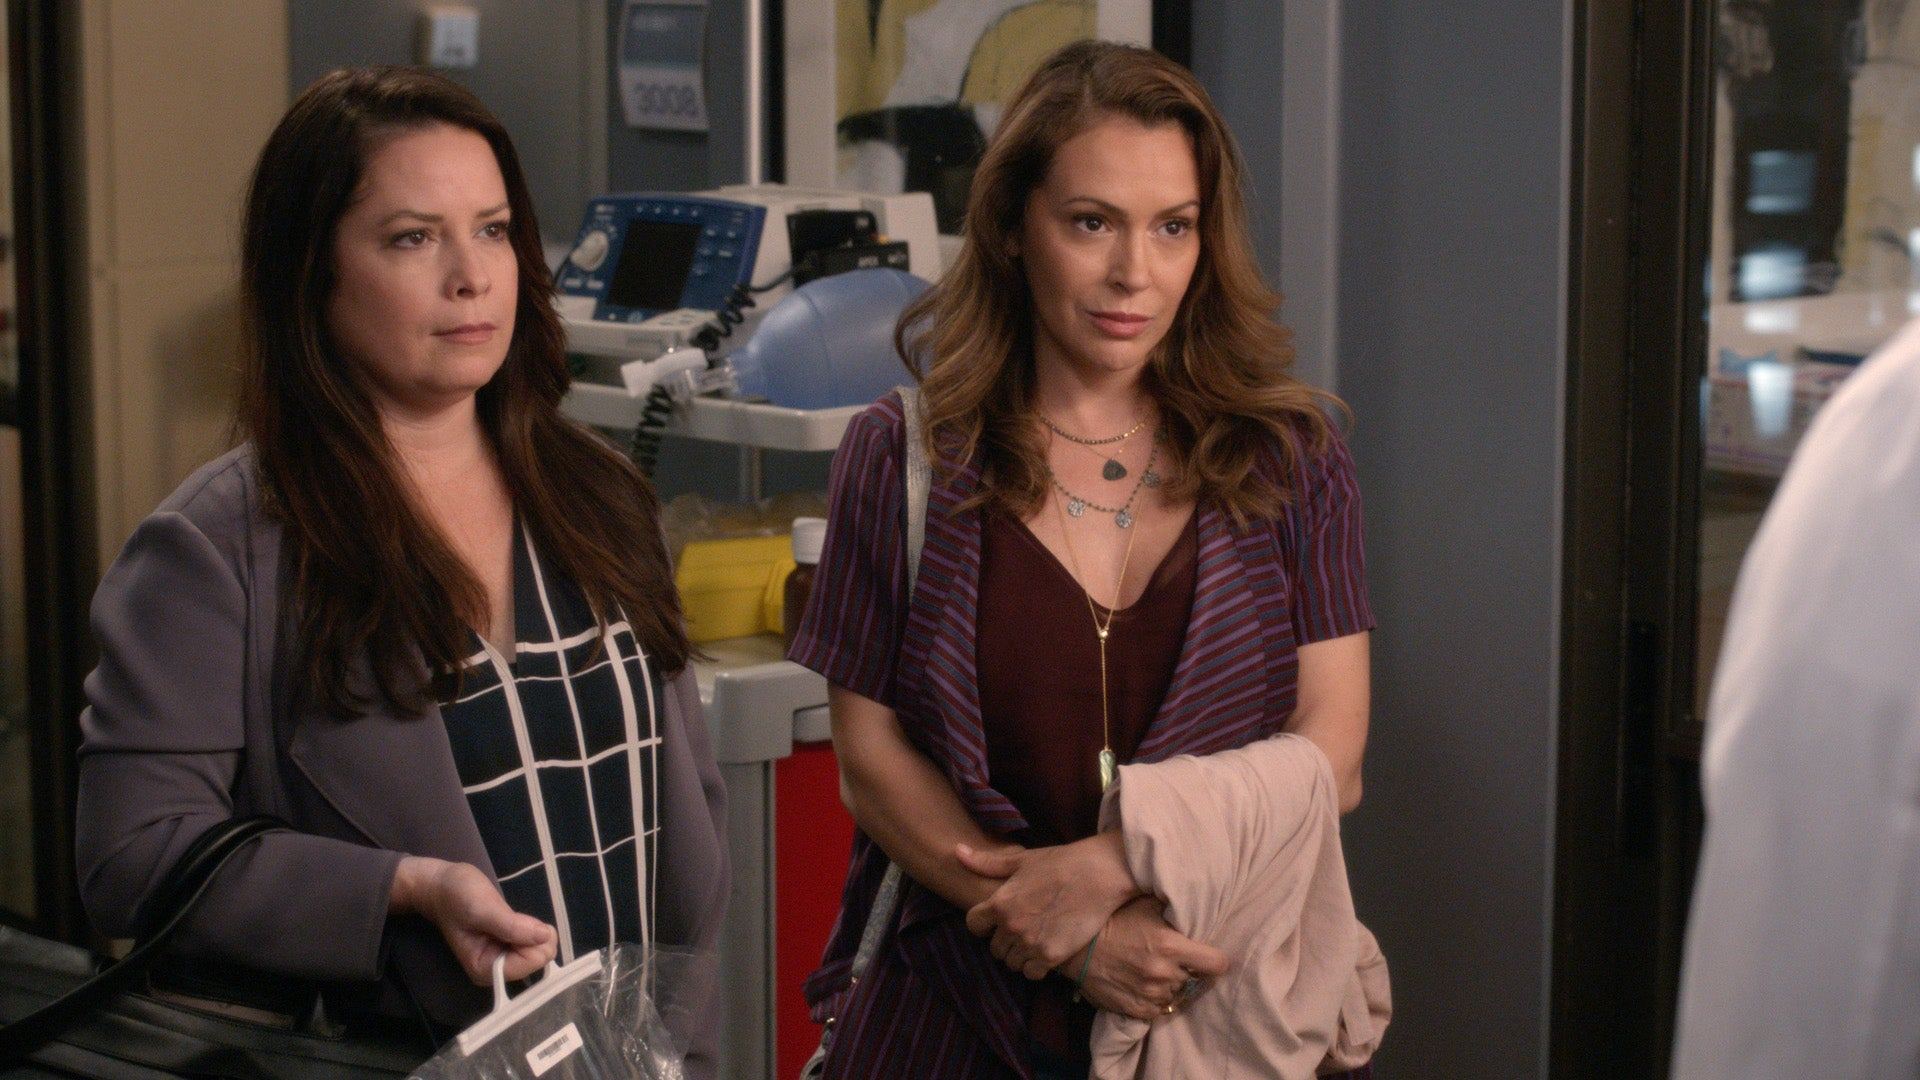 'Charmed' Stars Alyssa Milano and Holly Marie Combs to Reunite on 'Grey's Anatomy'